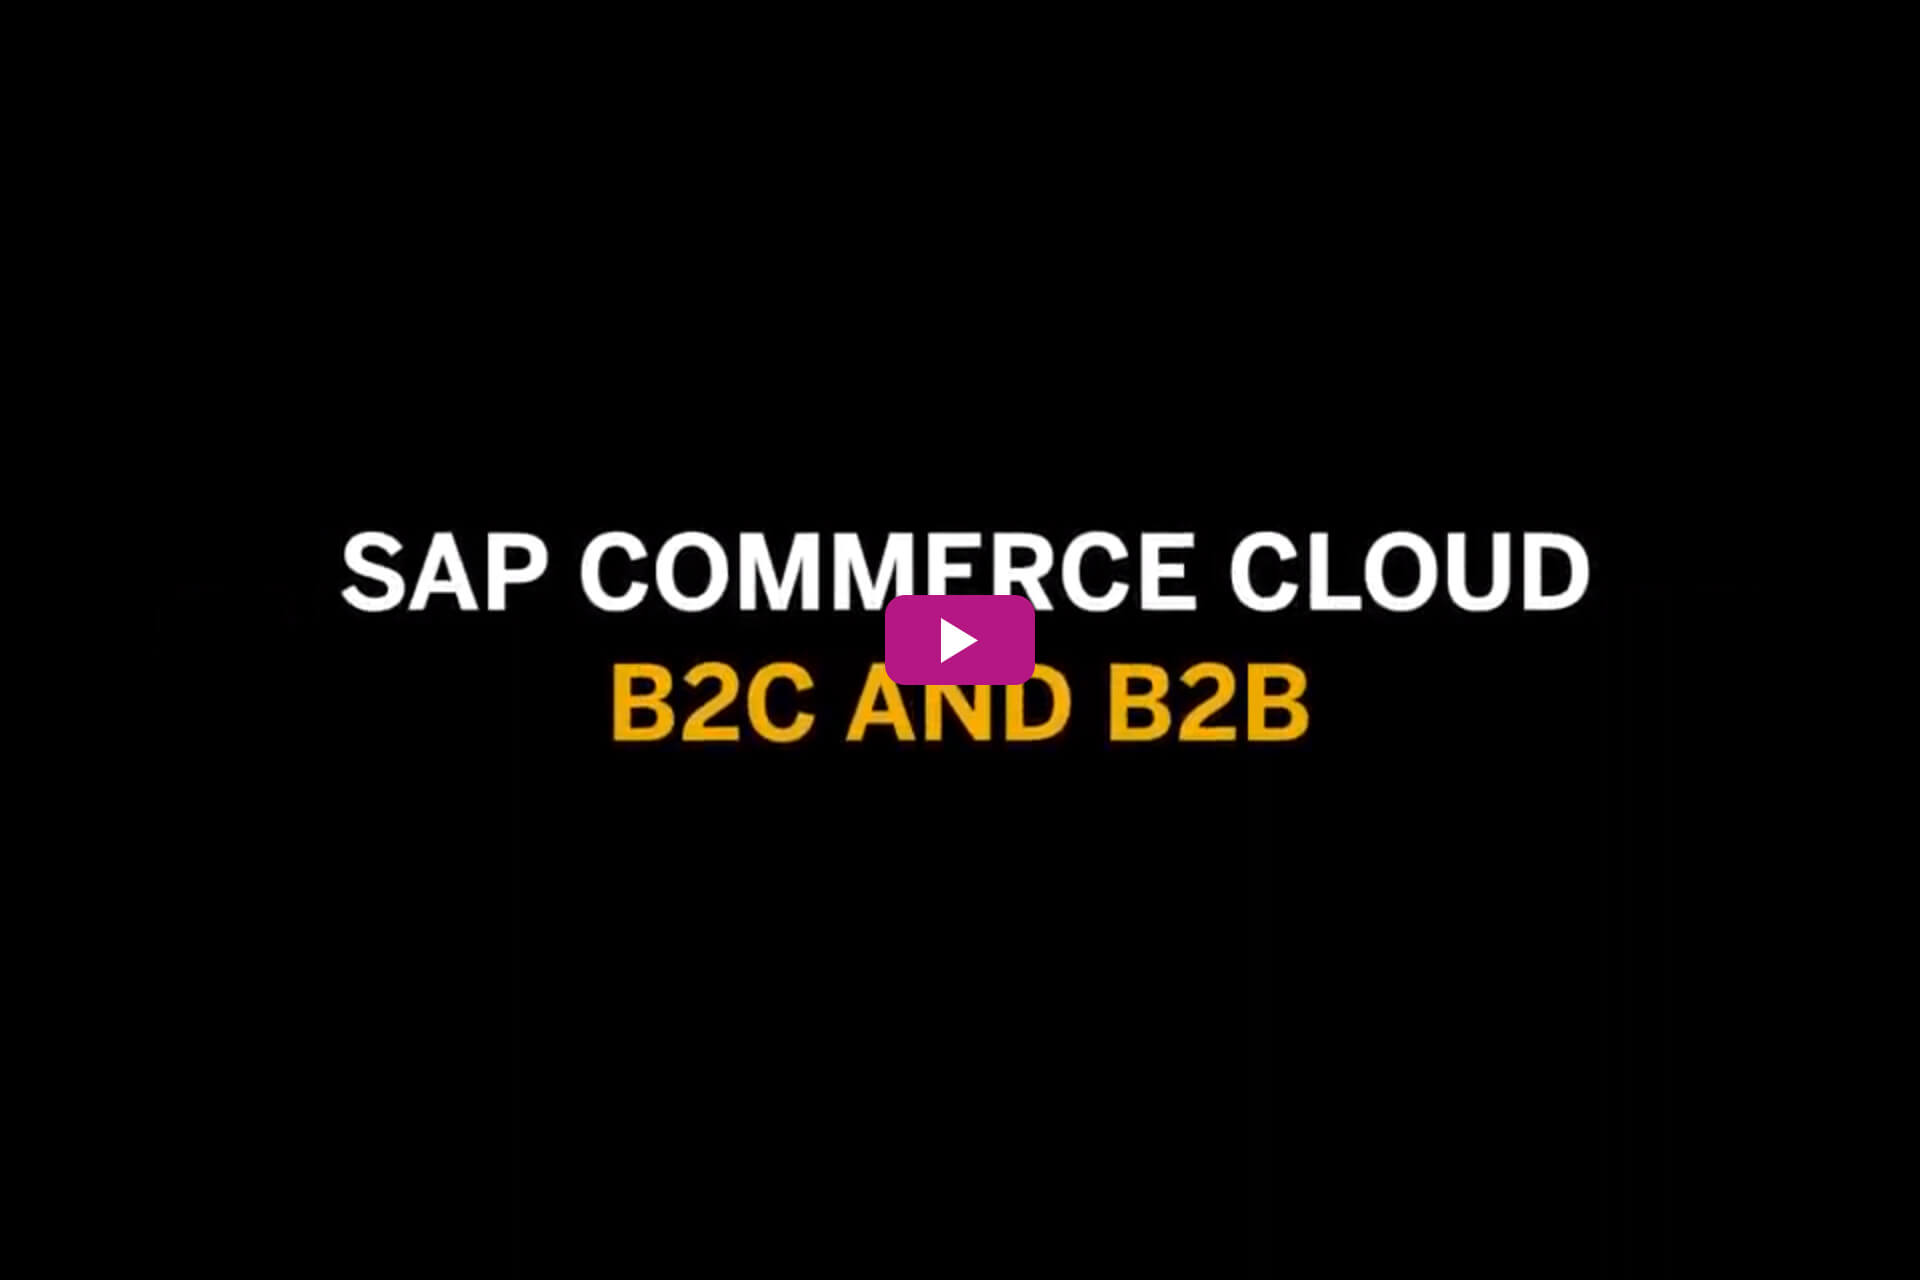 Vorschaubild für das Video SAP Commerce Cloud B2C and B2B